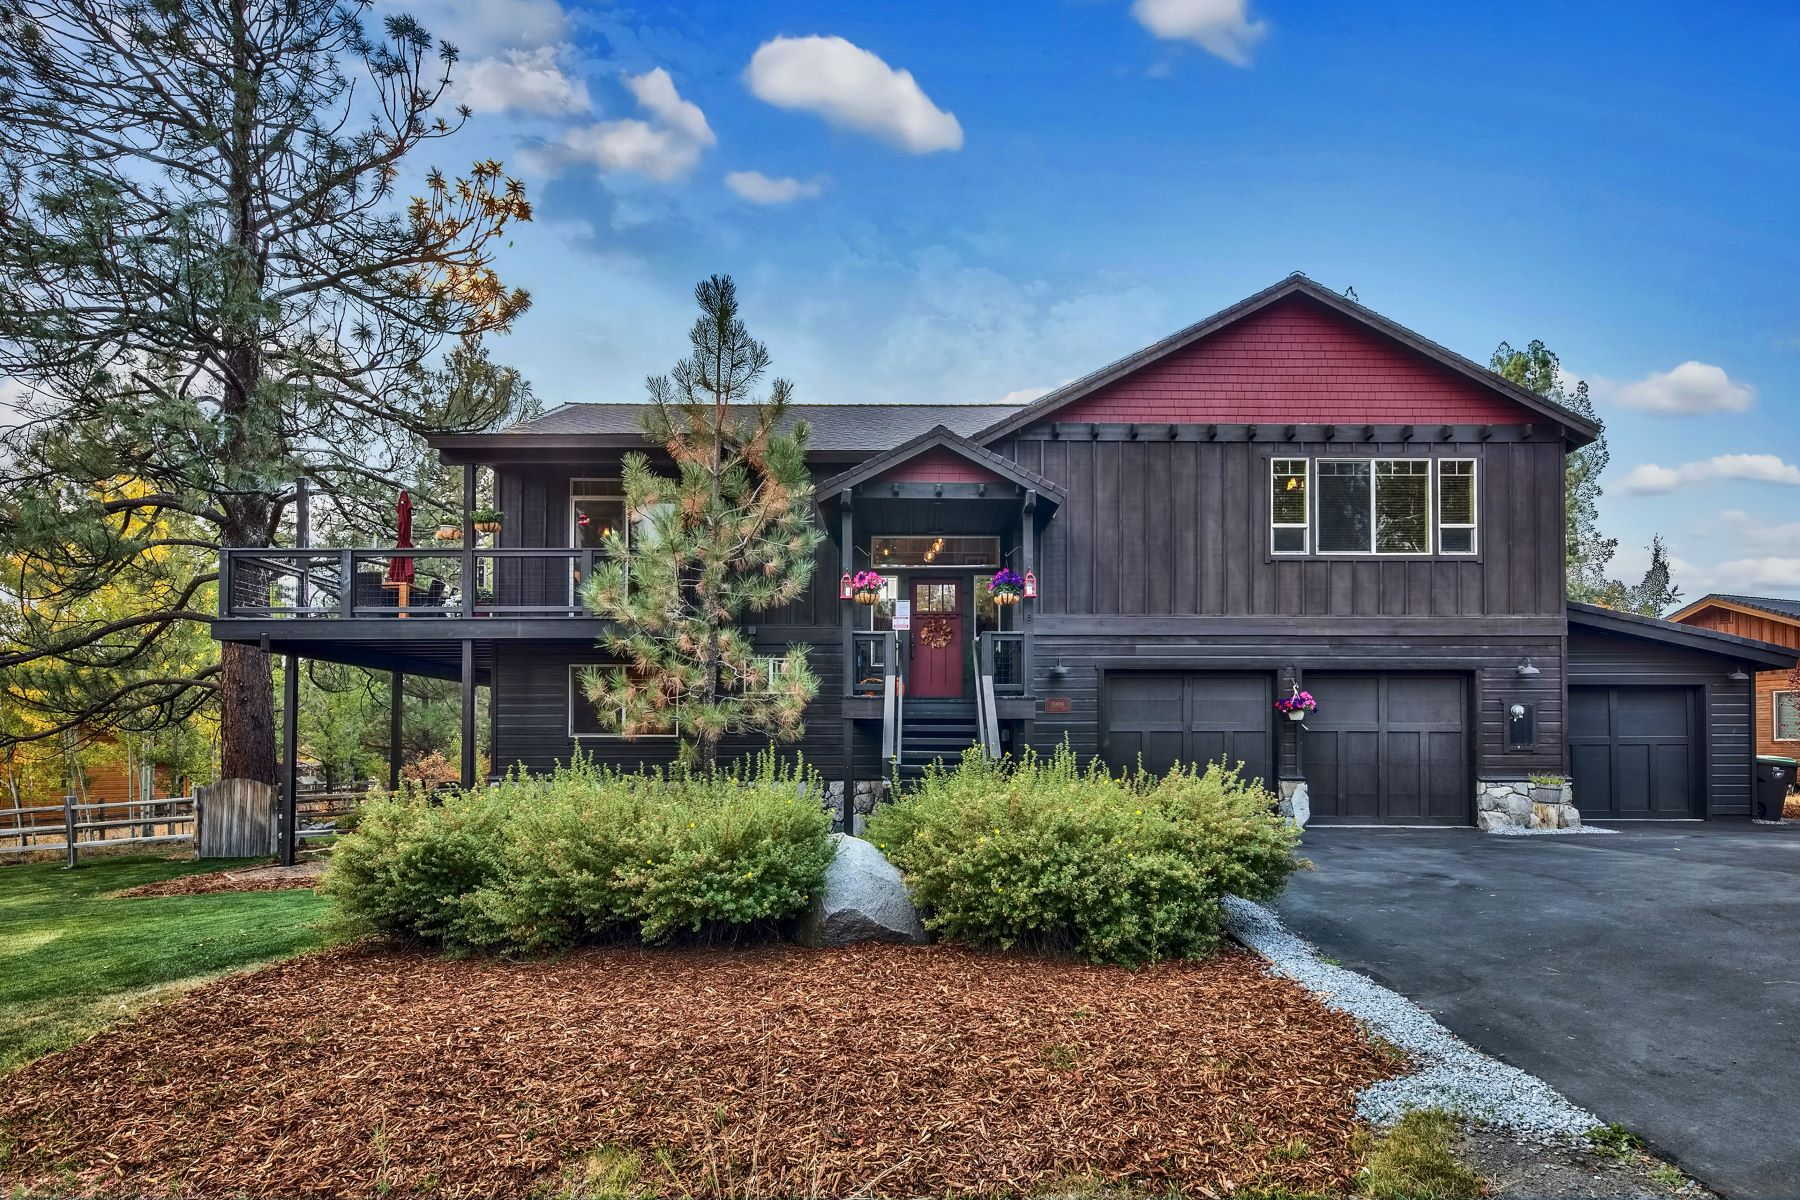 Property for Active at Built For Fun! 15606 Sudsbury Circle Truckee, California 96161 United States